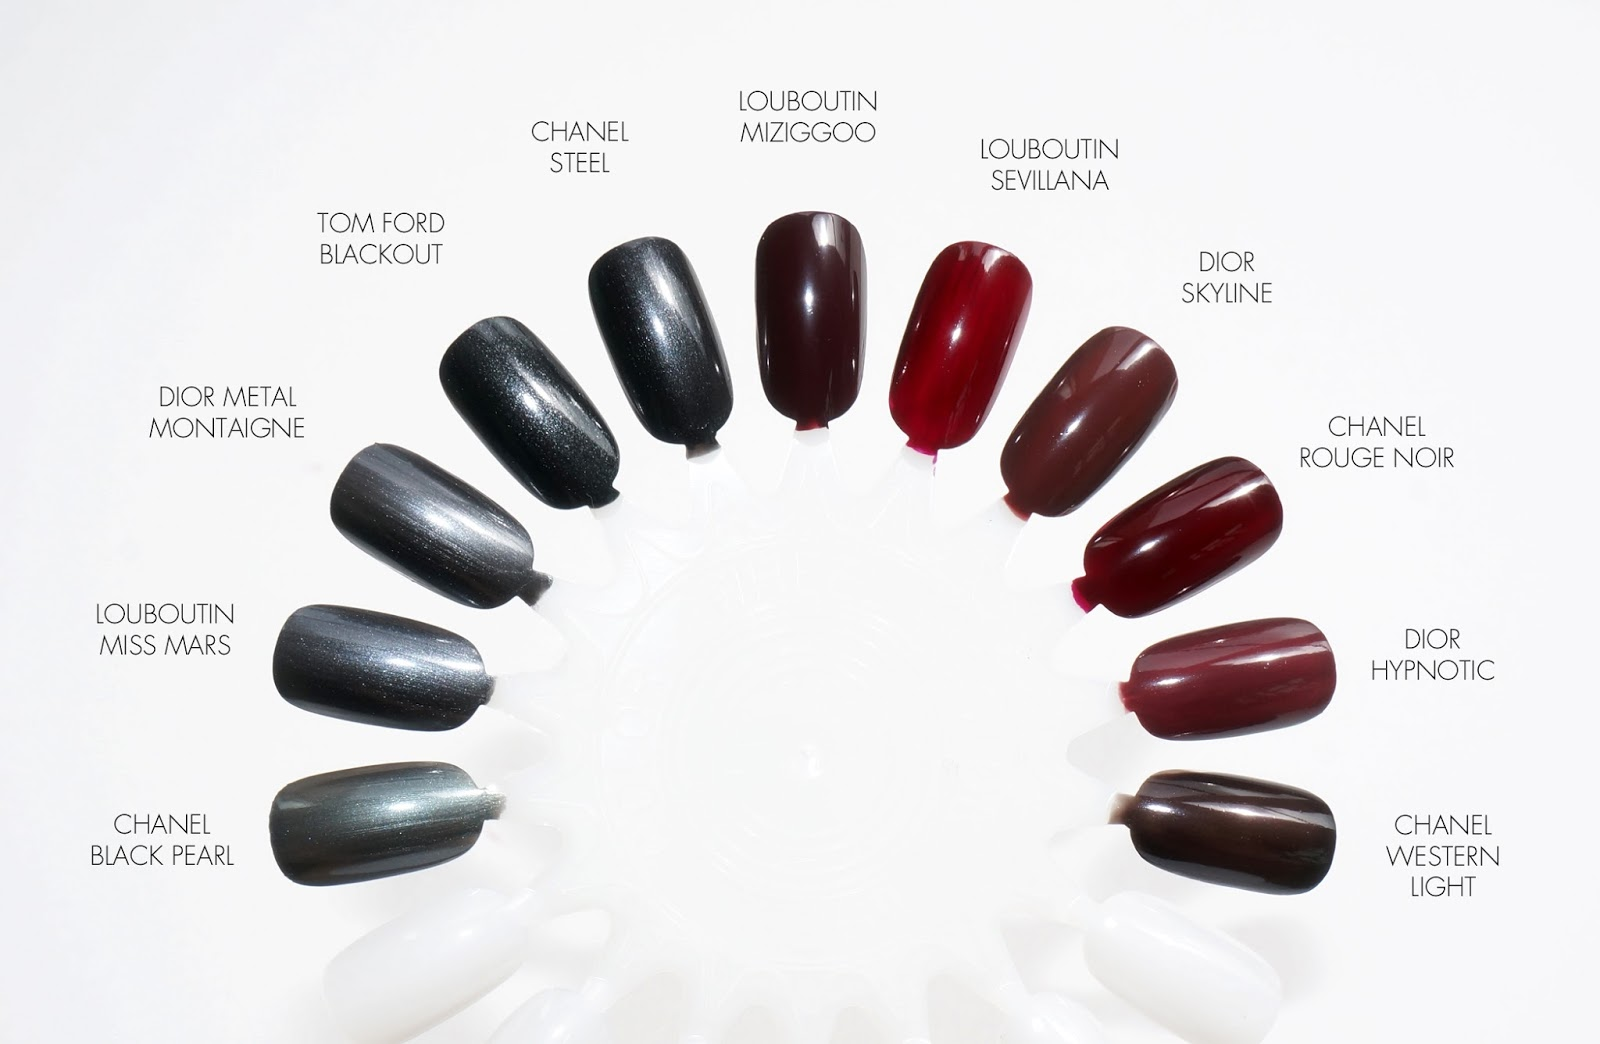 Christian Louboutin The Noirs Nail Colors for Fall 2016 - Miziggoo ...